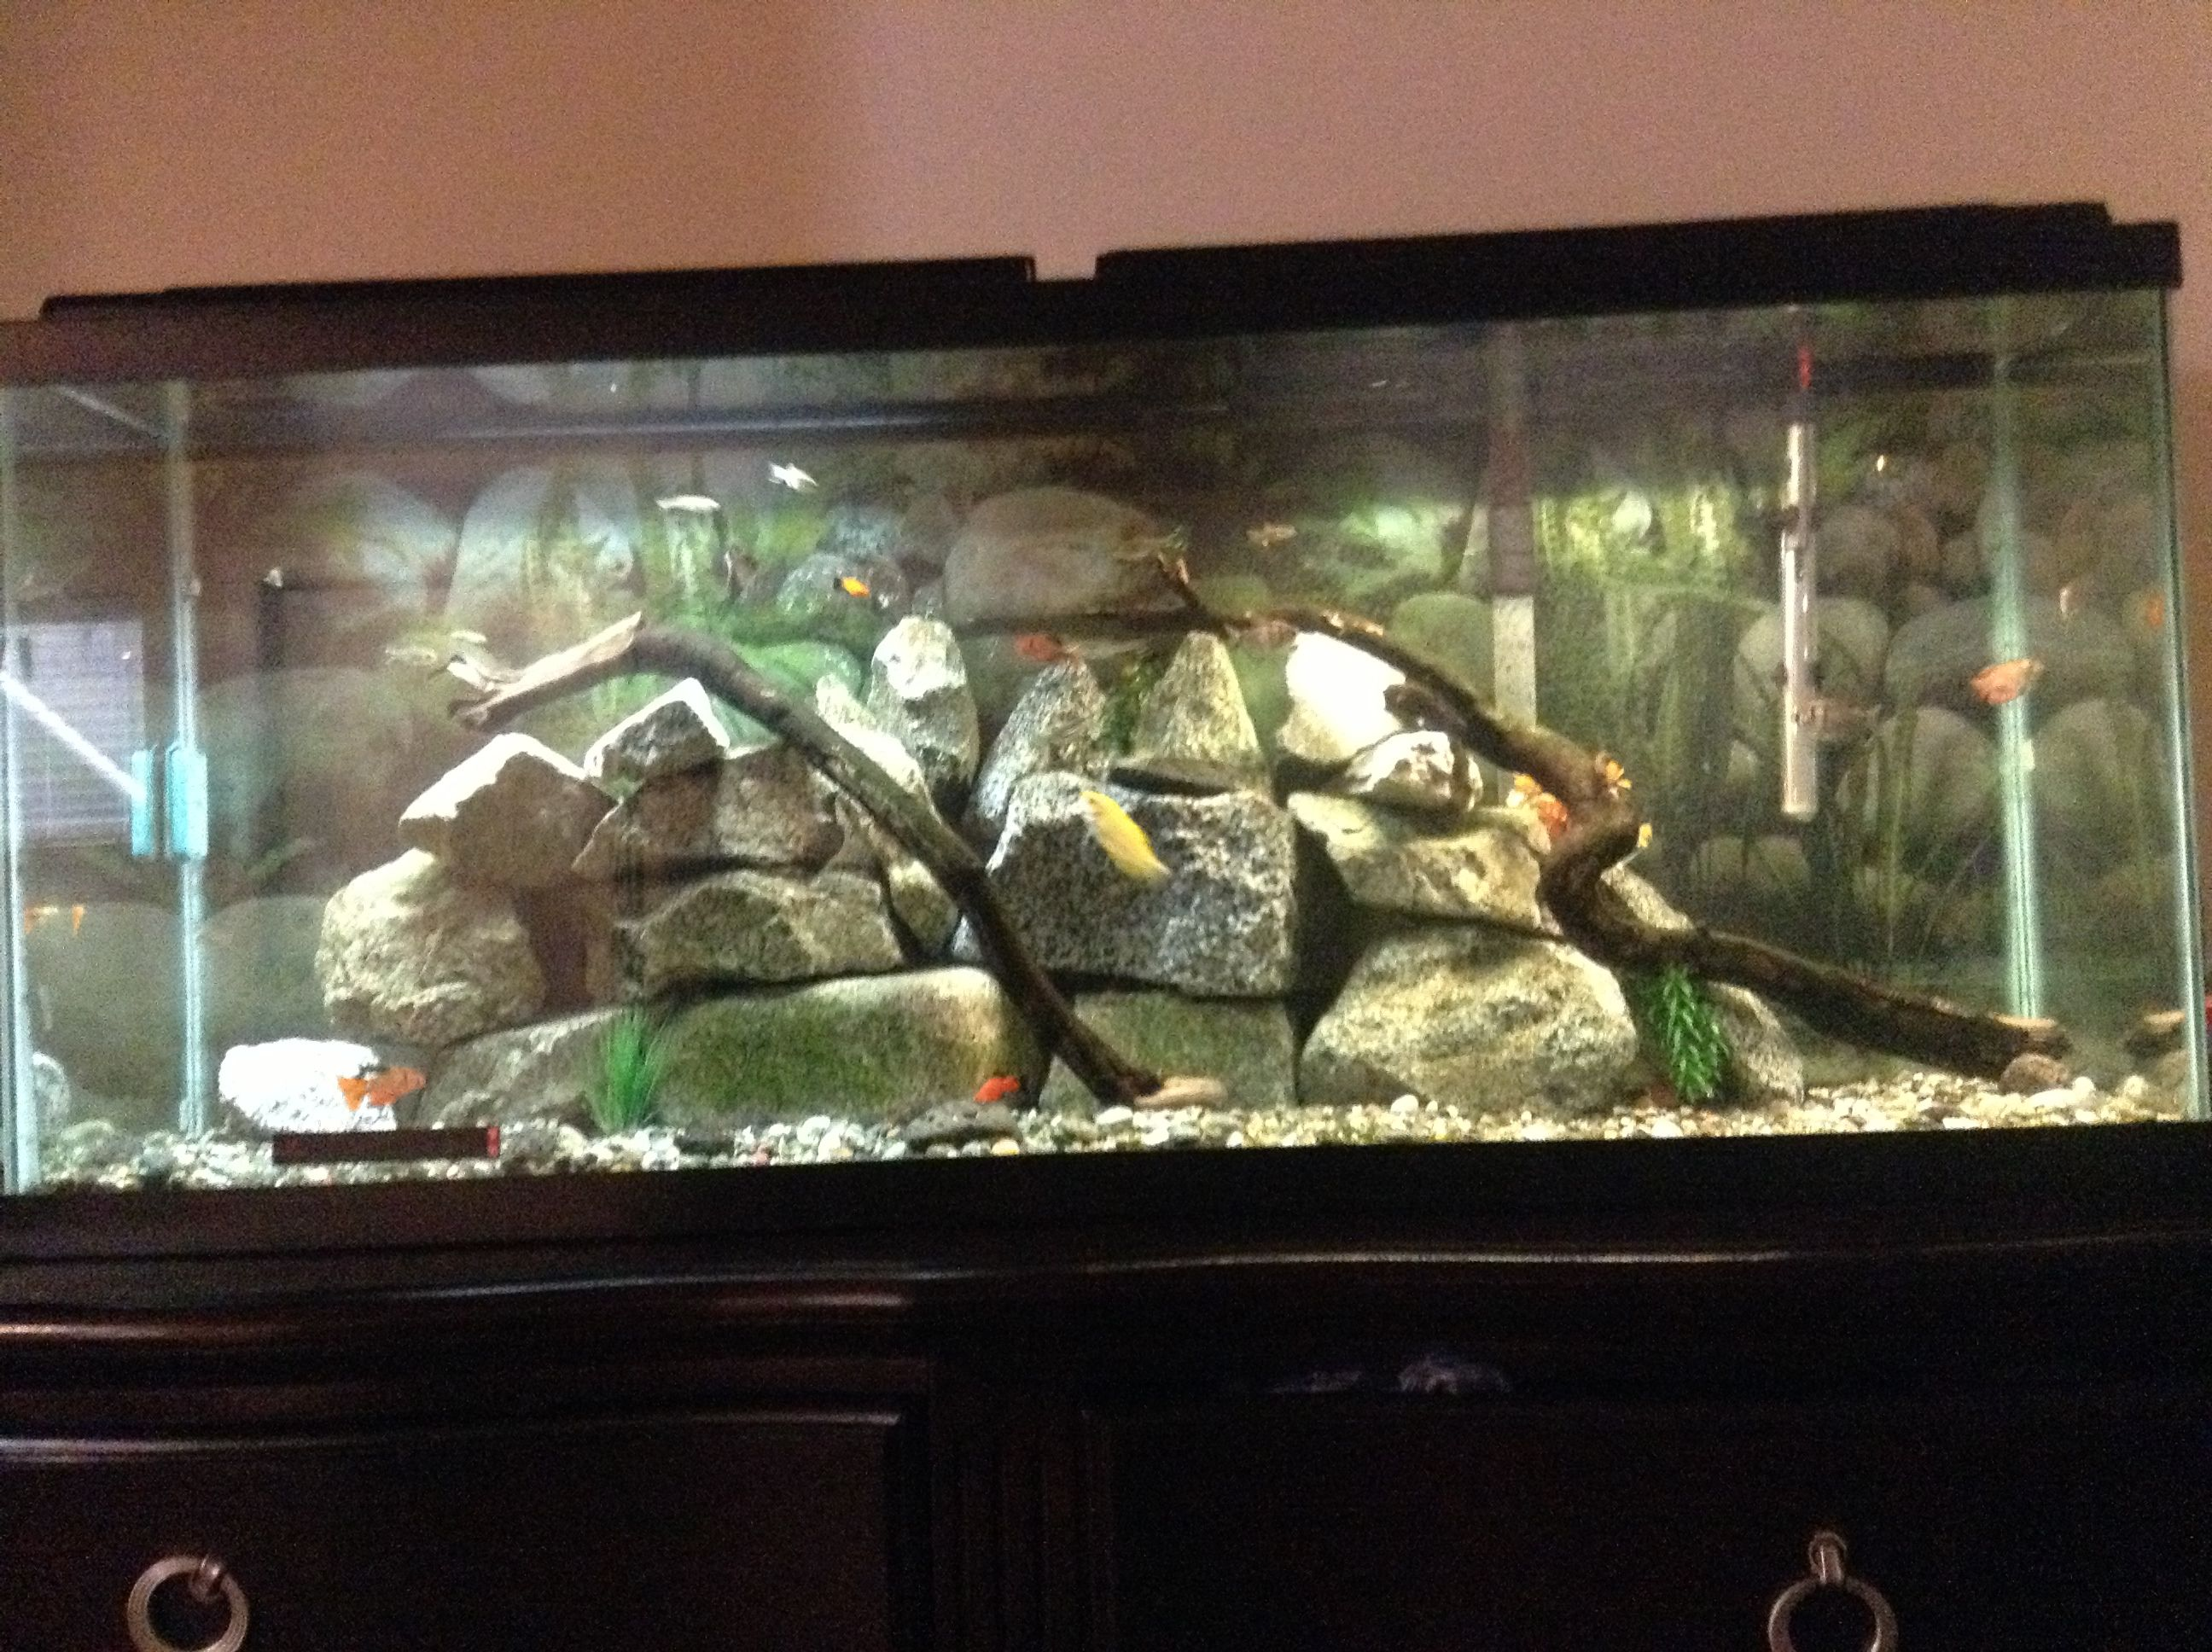 This is my fish tank 27 fish it s 55 gallons Pets Pinterest